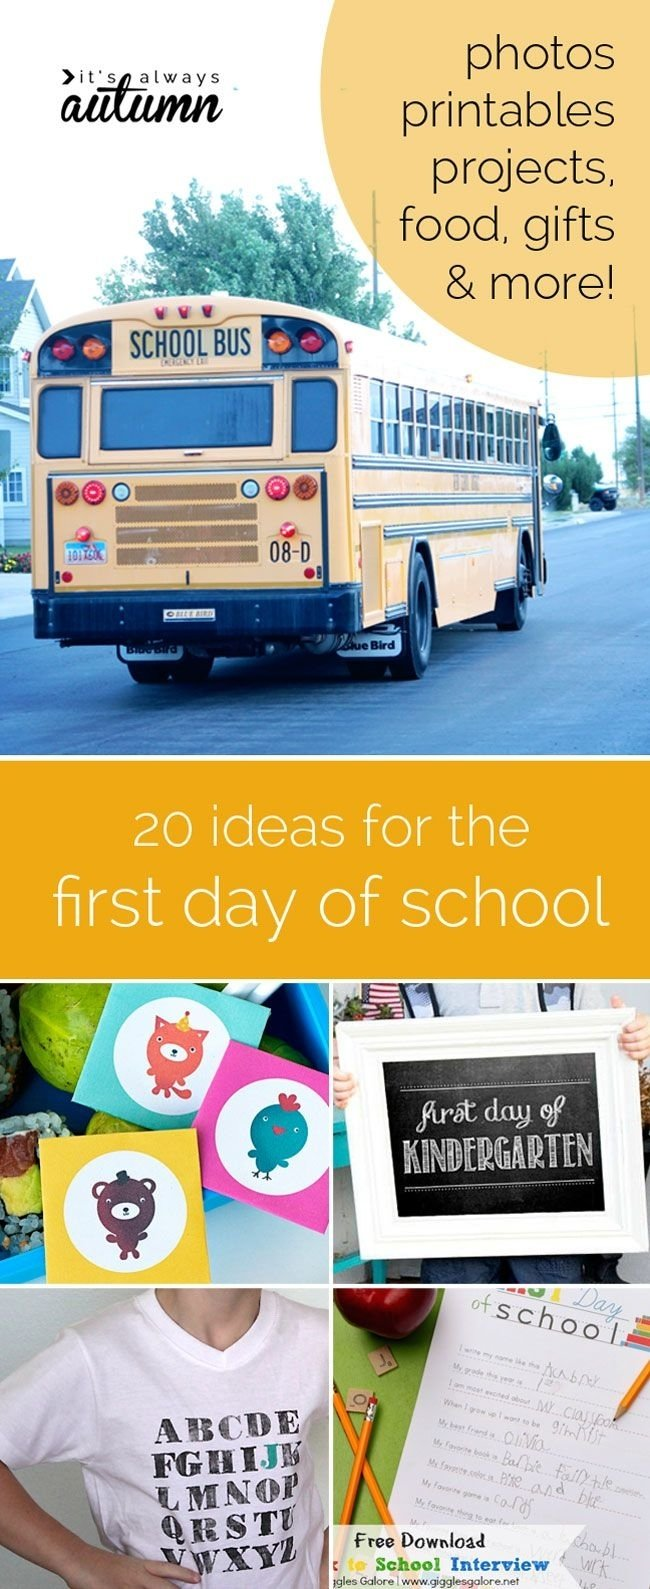 10 Best Commercial Ideas For School Project 229 best kids back to school ideas images on pinterest back to